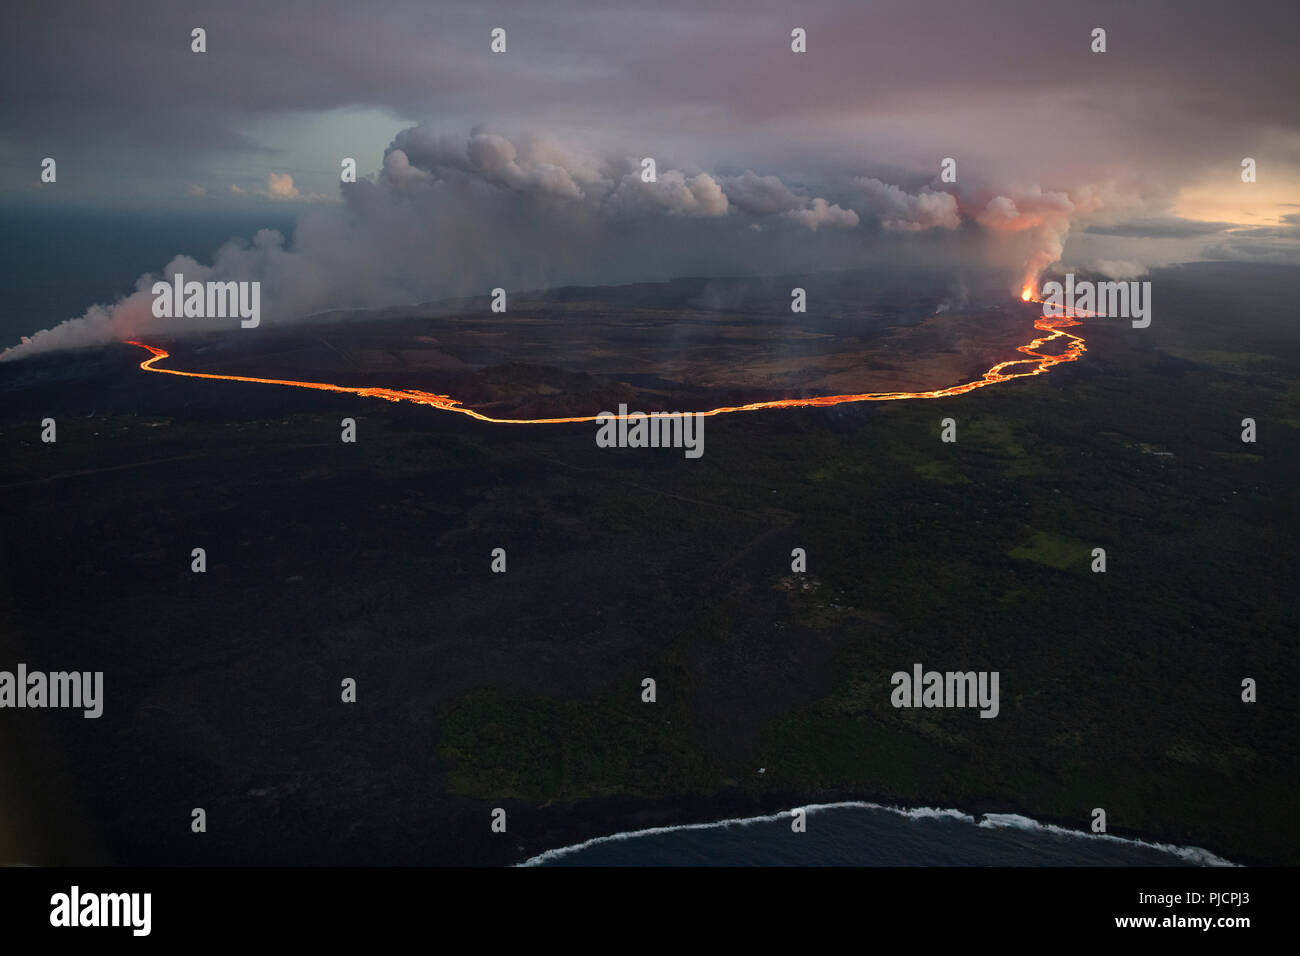 A river of lava flows from Fissure 8 of Hawaii's Kilauea Volcano (at right) through lower Puna to enter the ocean, releasing a cloud of acidic steam. - Stock Image